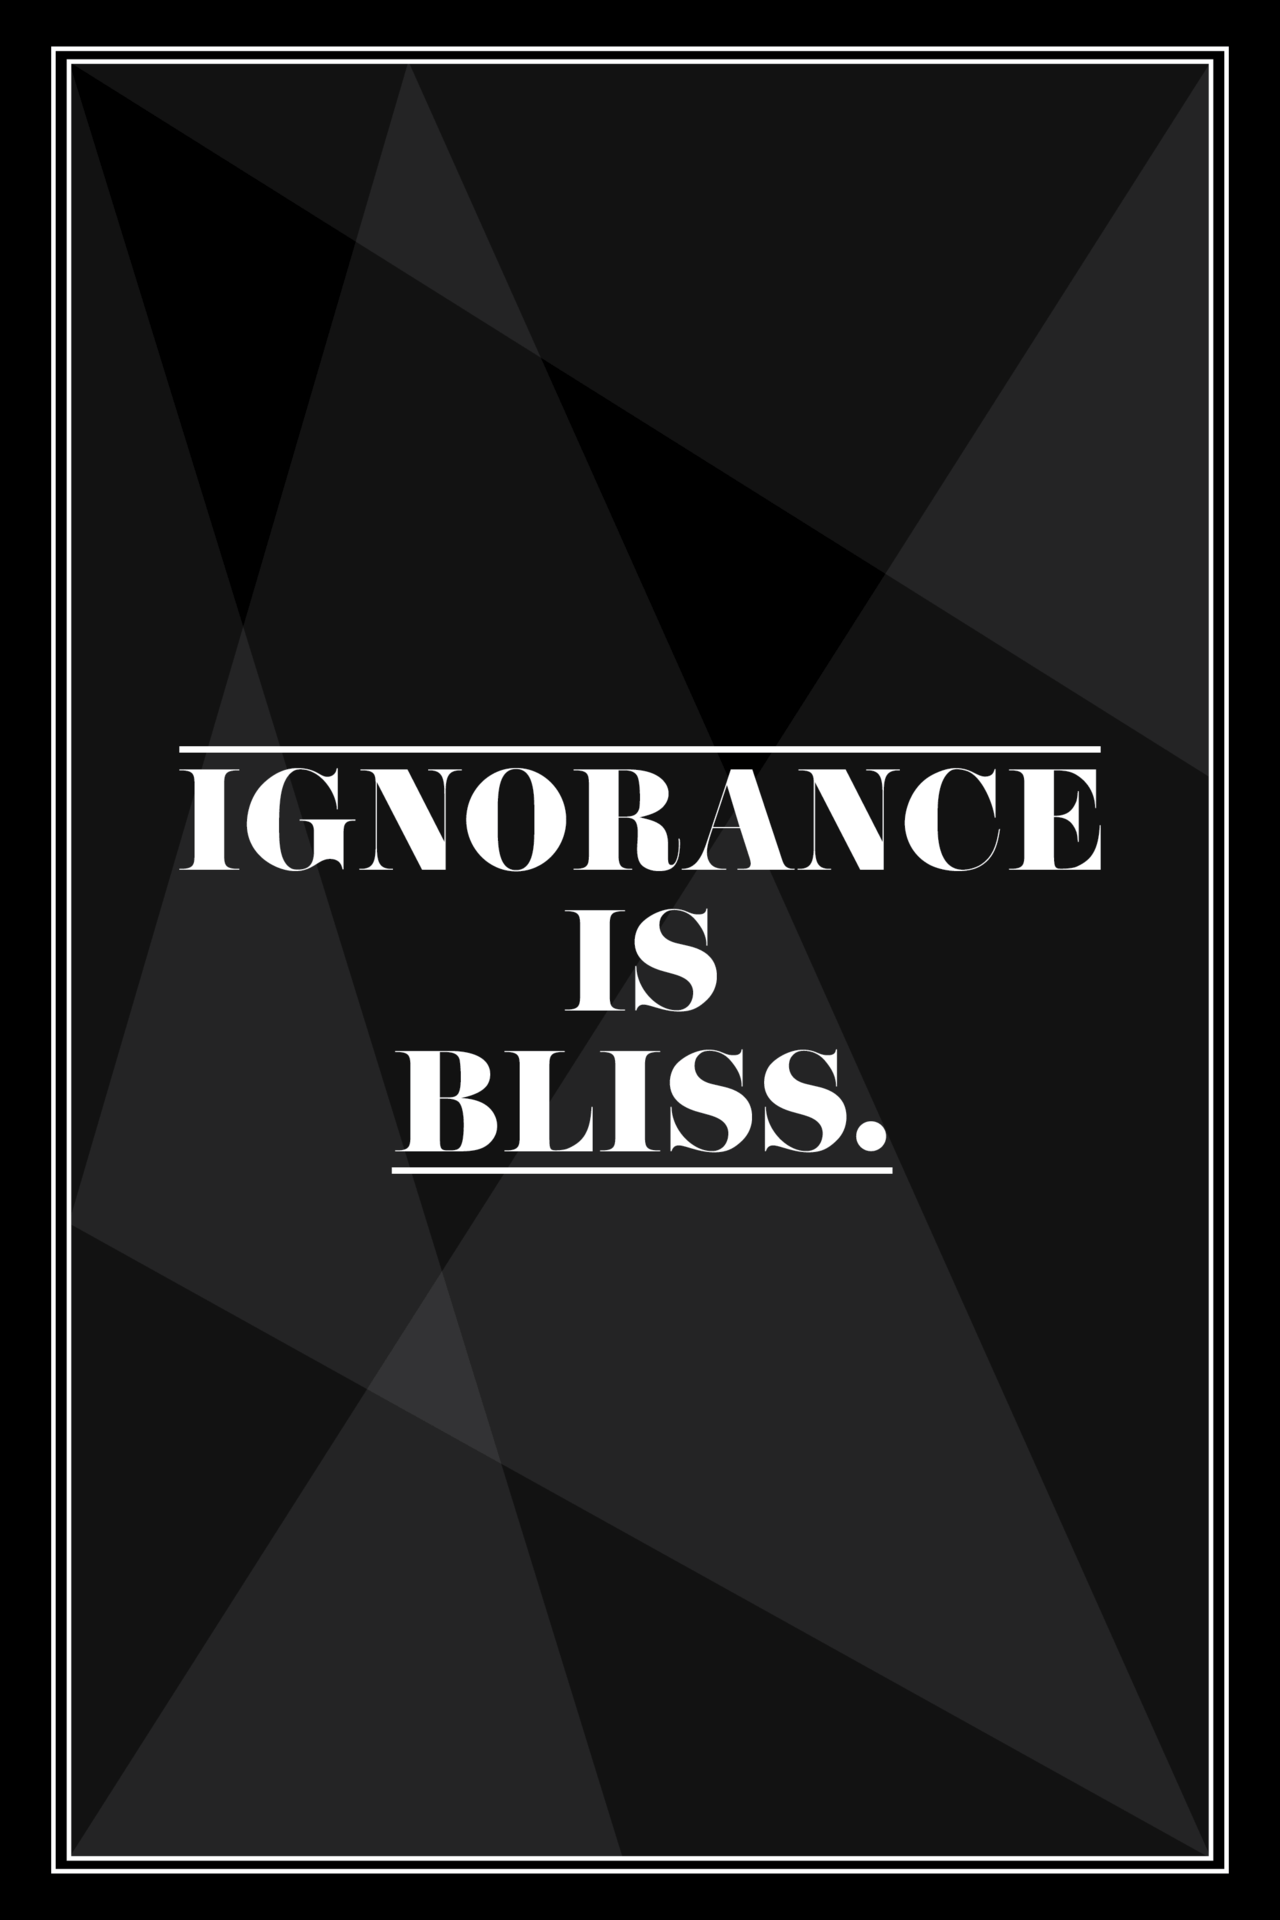 Moving On Quotes Wallpaper Is Ignorance Really Bliss Tomknuppel Com